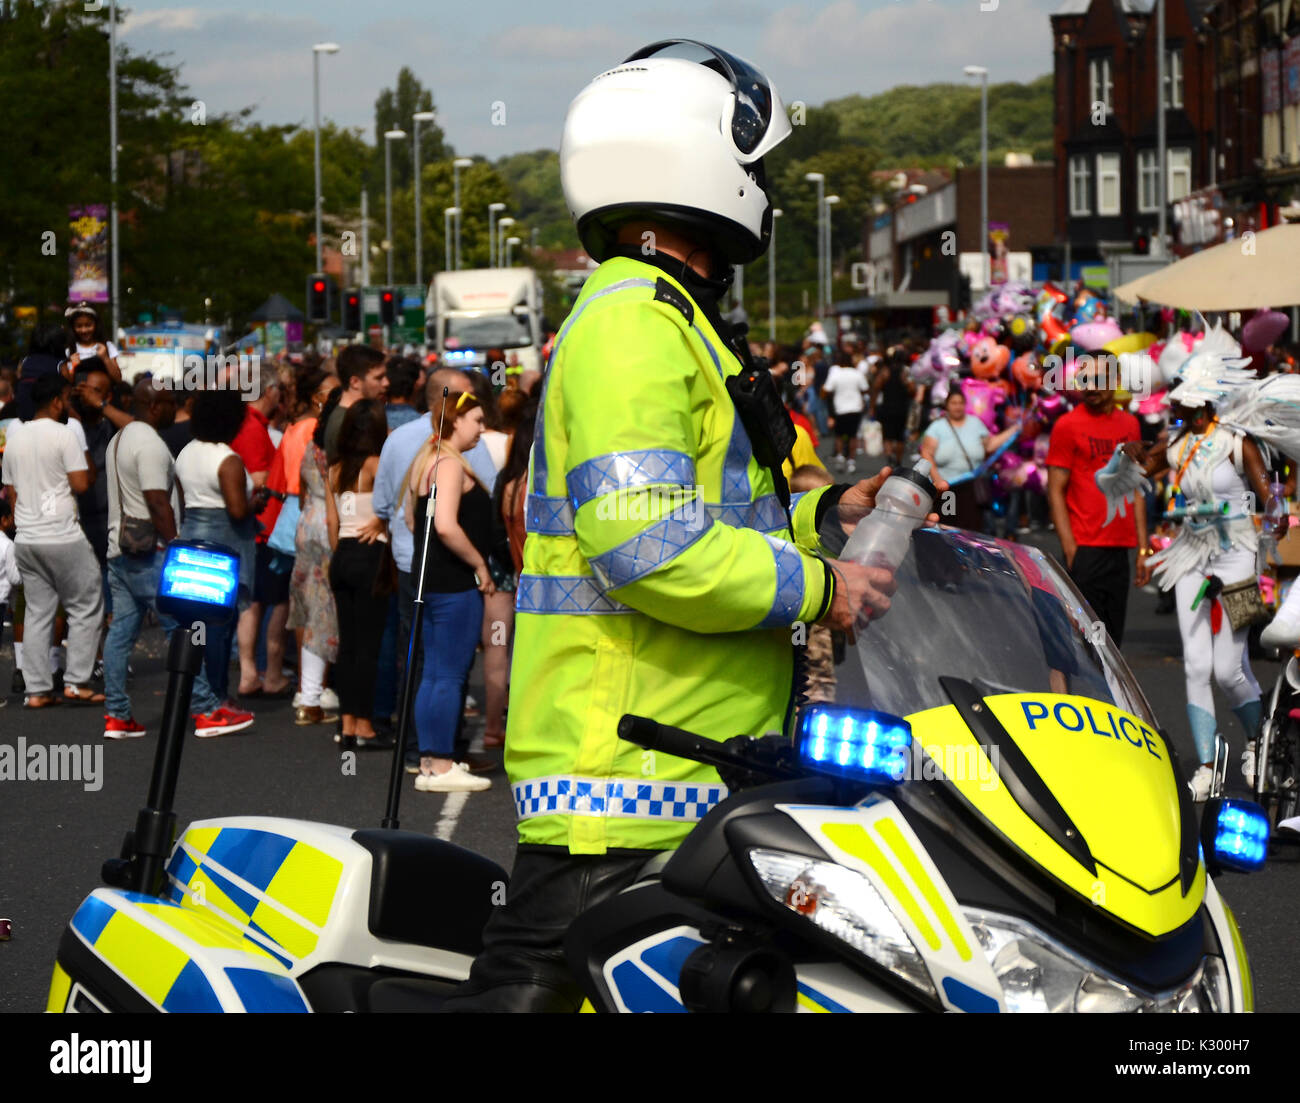 police officer on police motorcycle - Stock Image